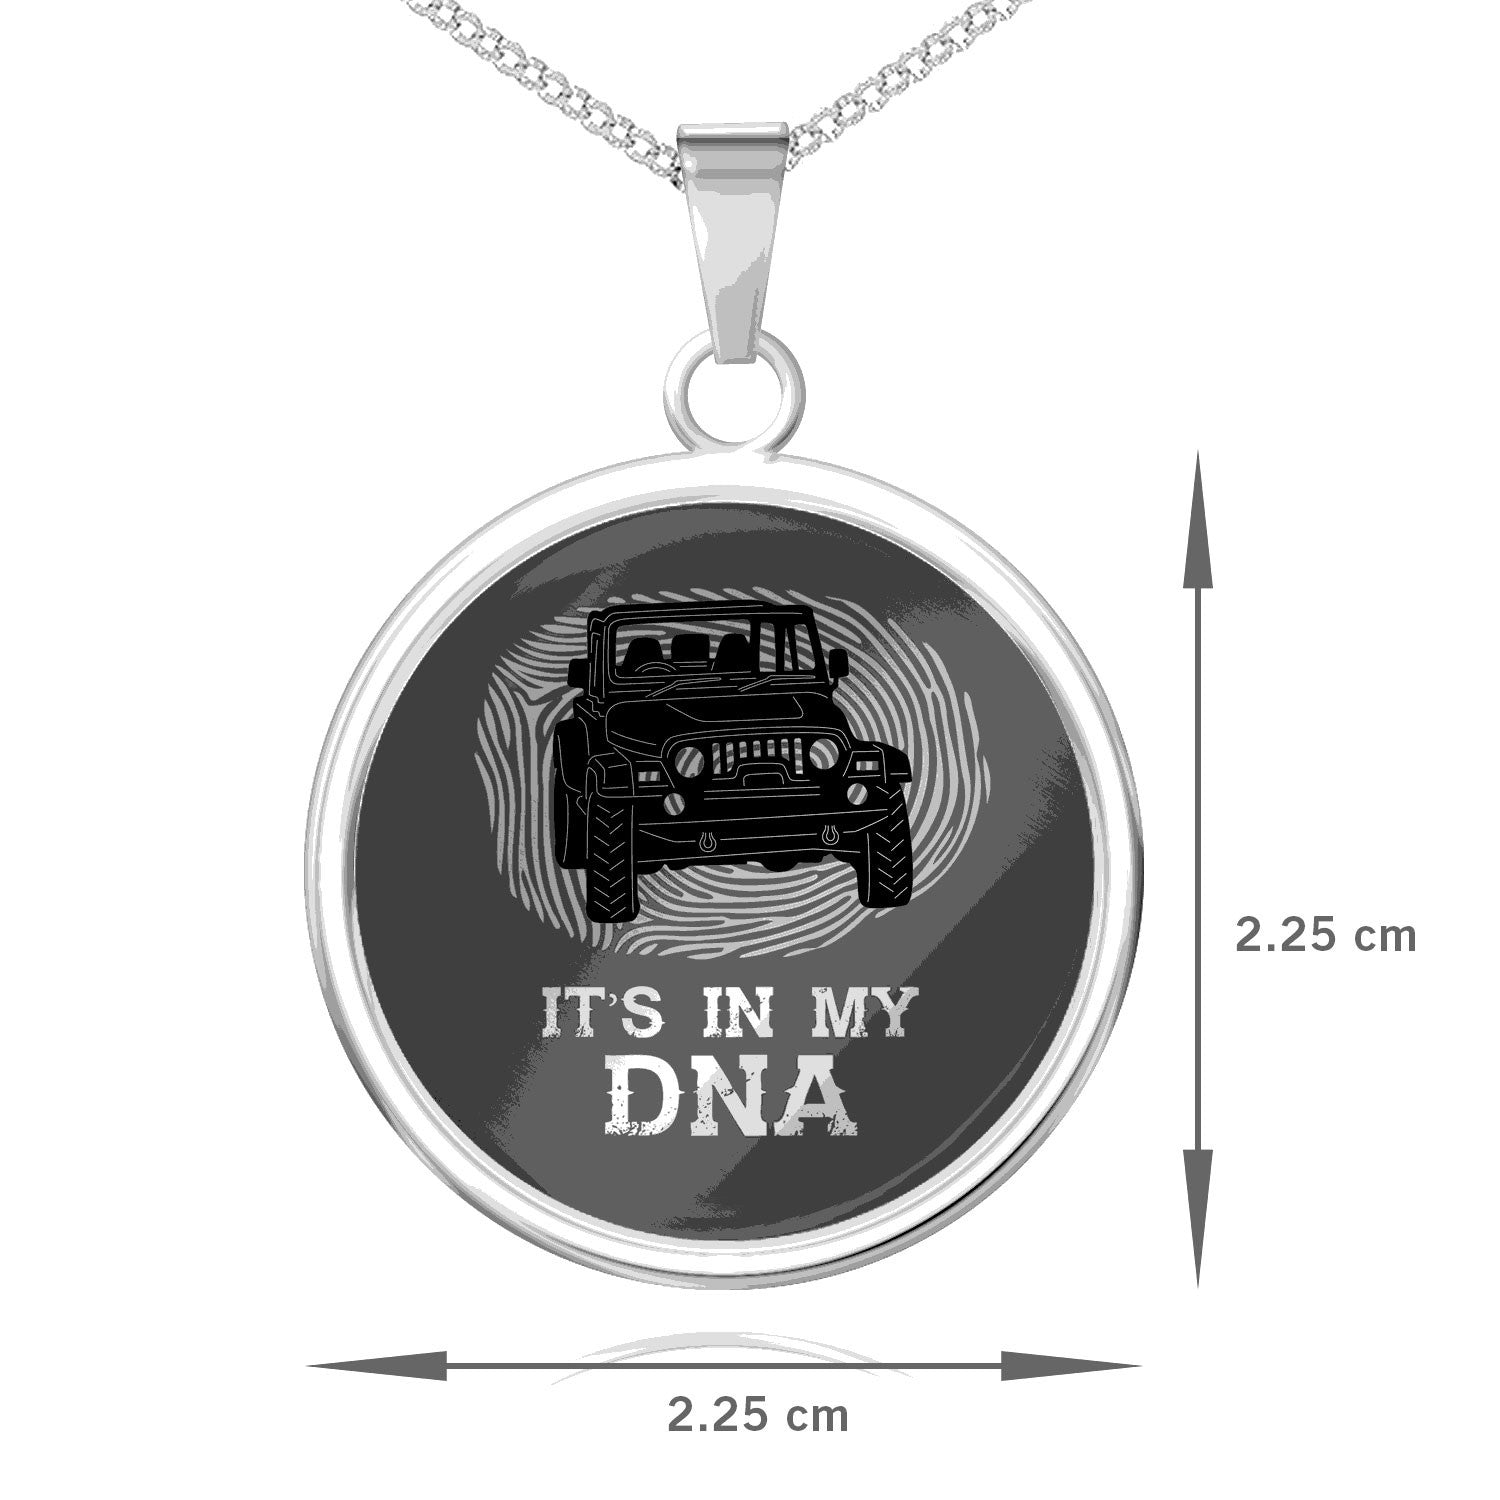 It's In My DNA Pendant